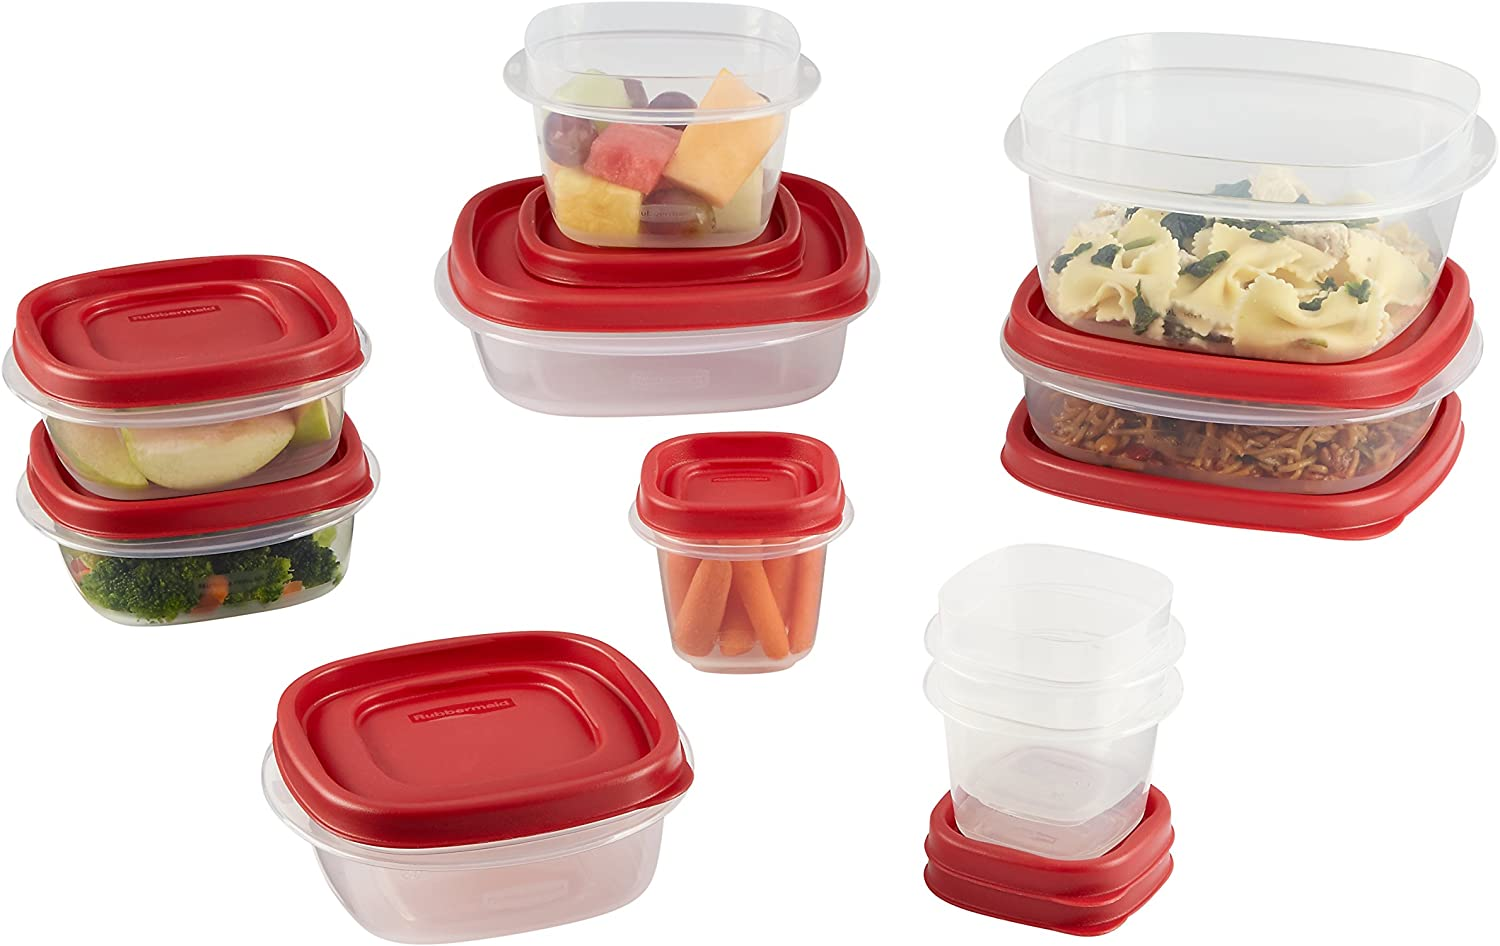 Rubbermaid Easy Find Lids Food Storage Containers, Racer Red, 20-Piece Set 1783142